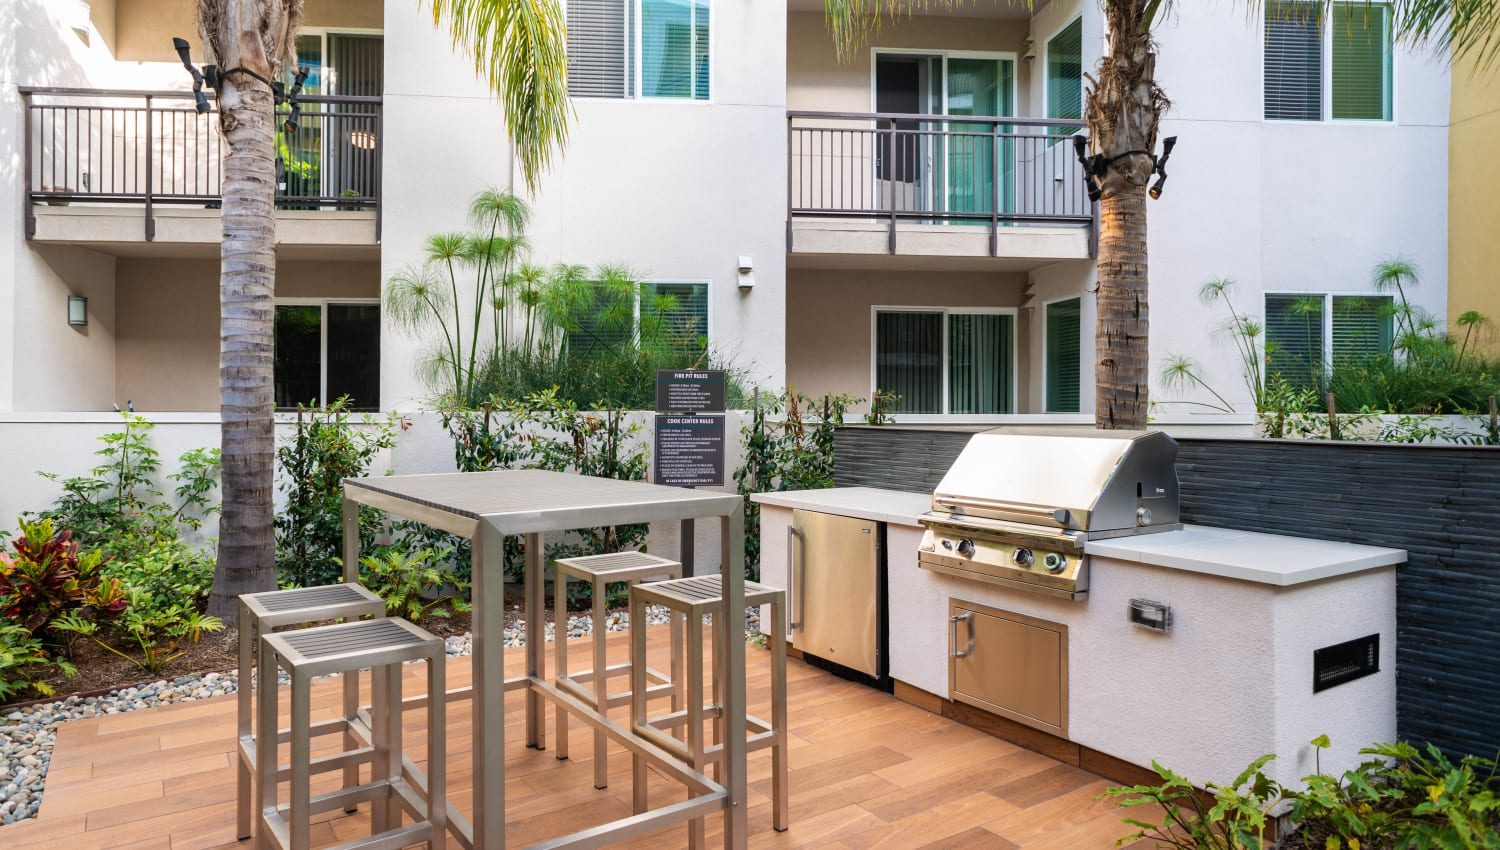 Gas grills at one of the barbecue areas at Fusion Apartments in Irvine, California